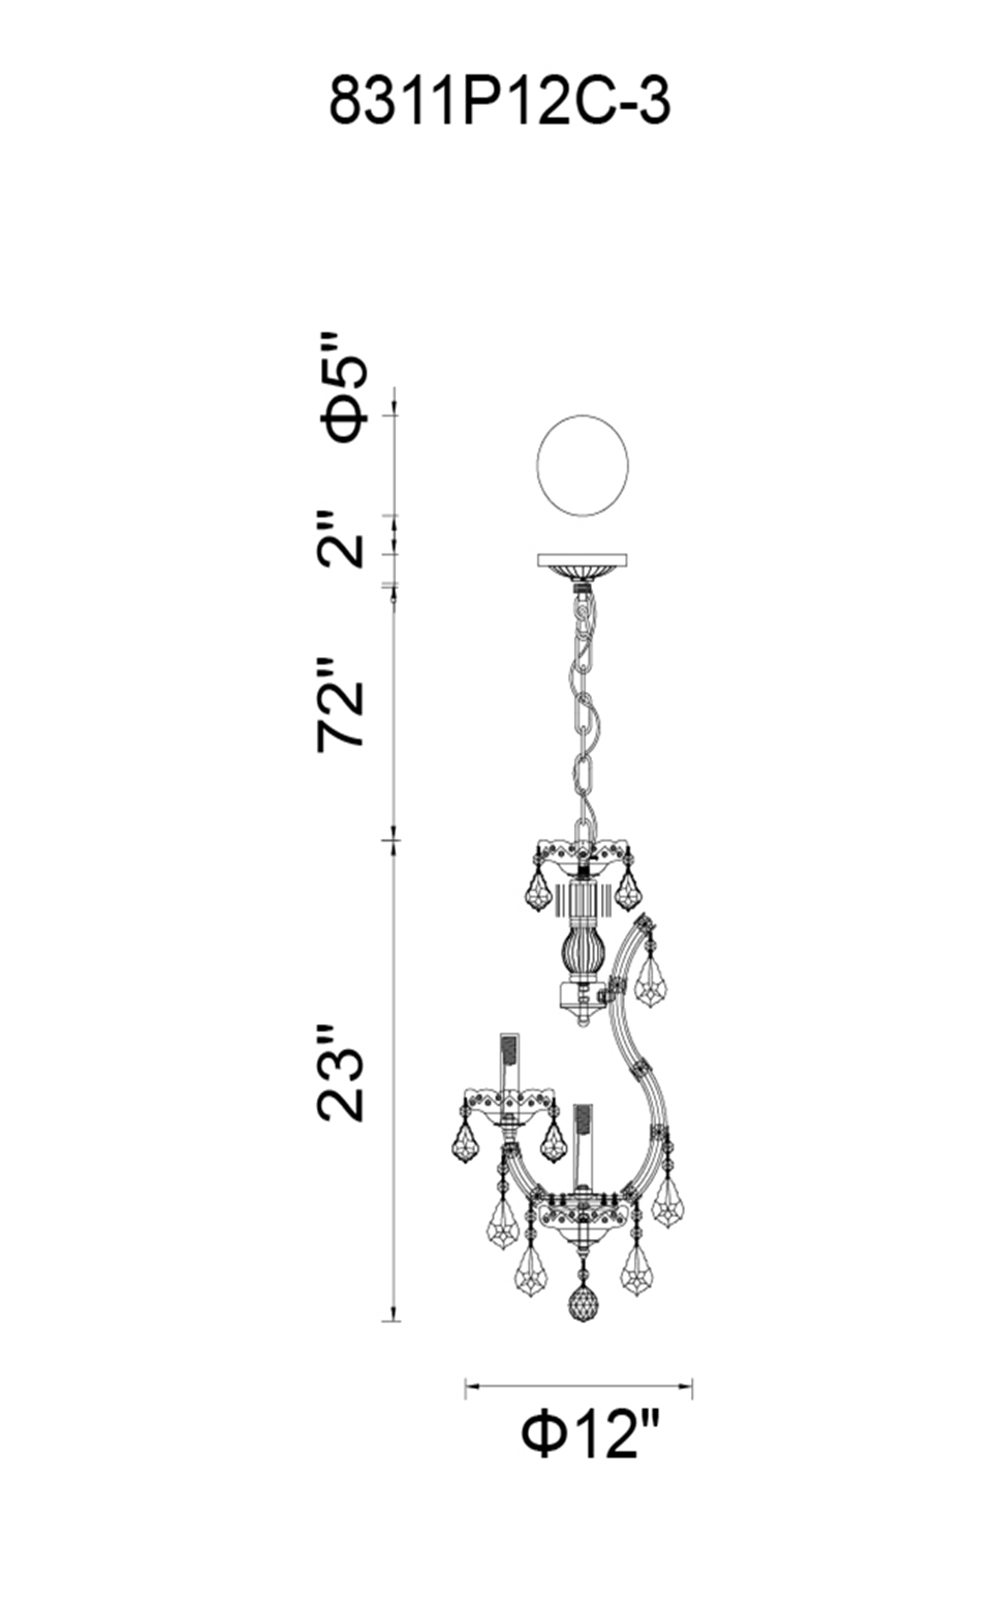 CWI Lighting Maria Theresa 4 Light Up Mini Chandelier With Chrome Finish Model: 8311P12C-3 Line Drawing